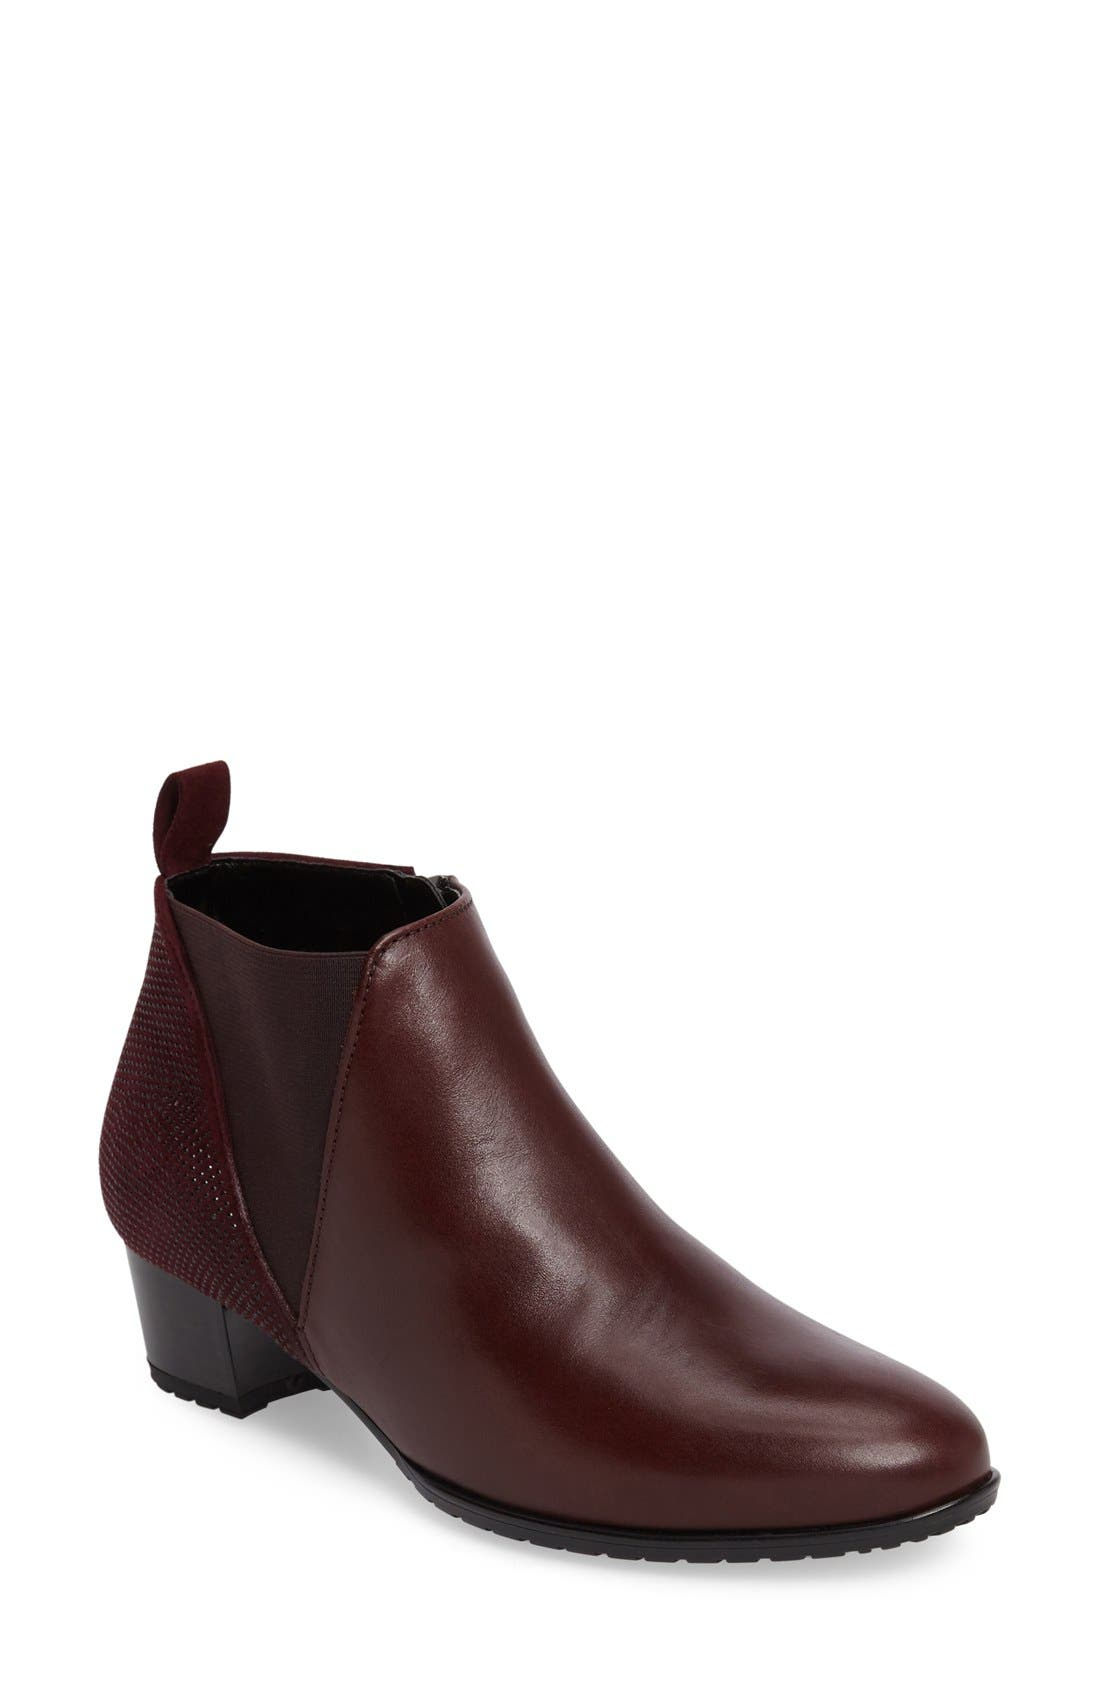 'Patty' Block Heel Boot,                         Main,                         color, Burgundy Leather